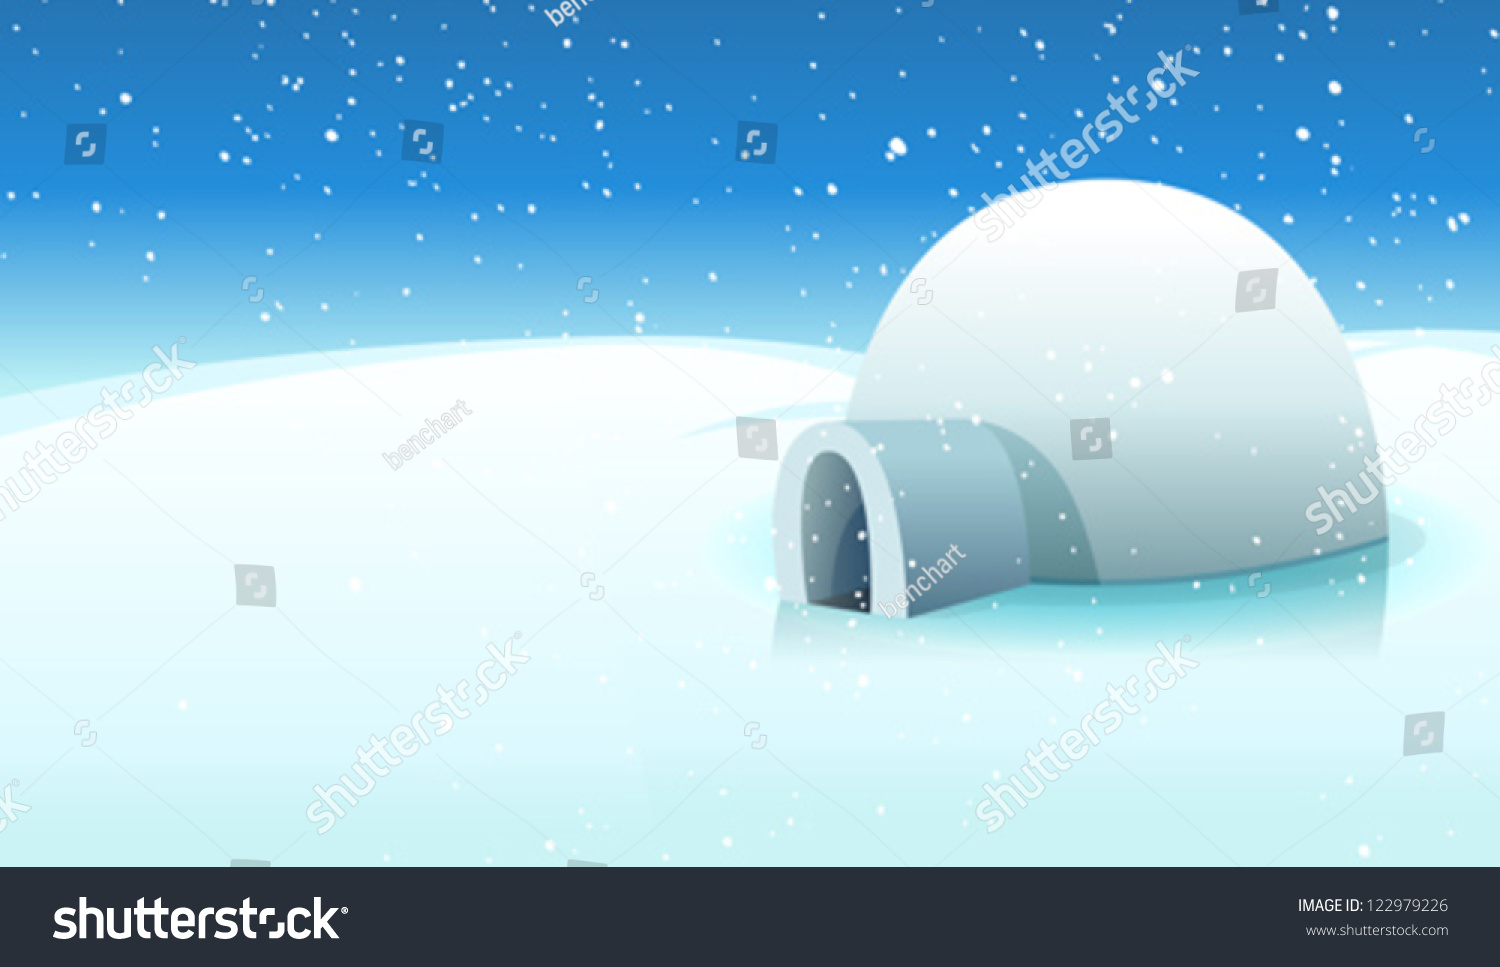 Igloo Polar Icy Background Illustration Cartoon Stock